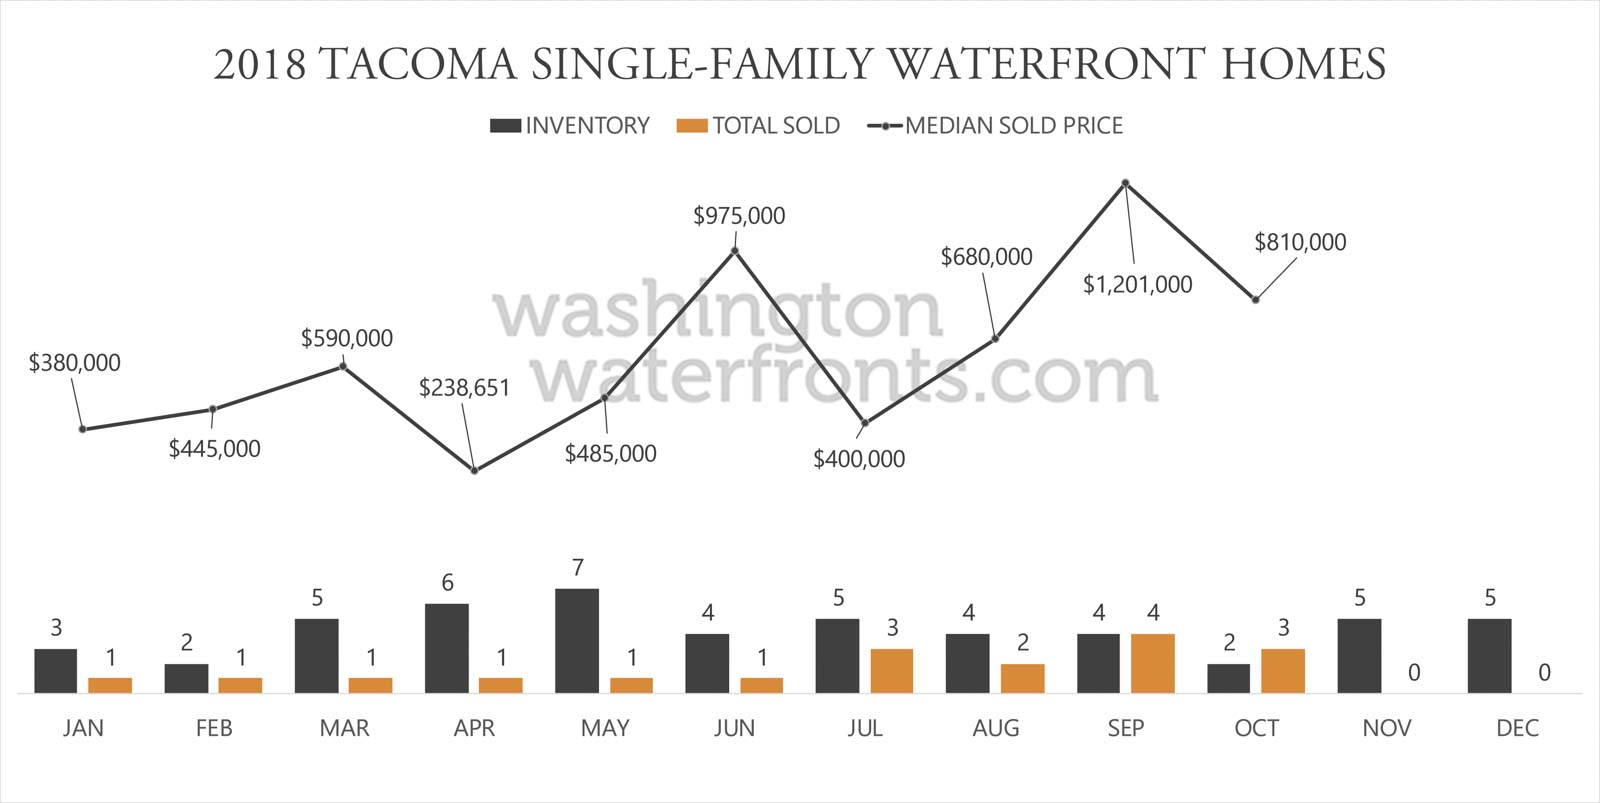 Tacoma Waterfront Inventory